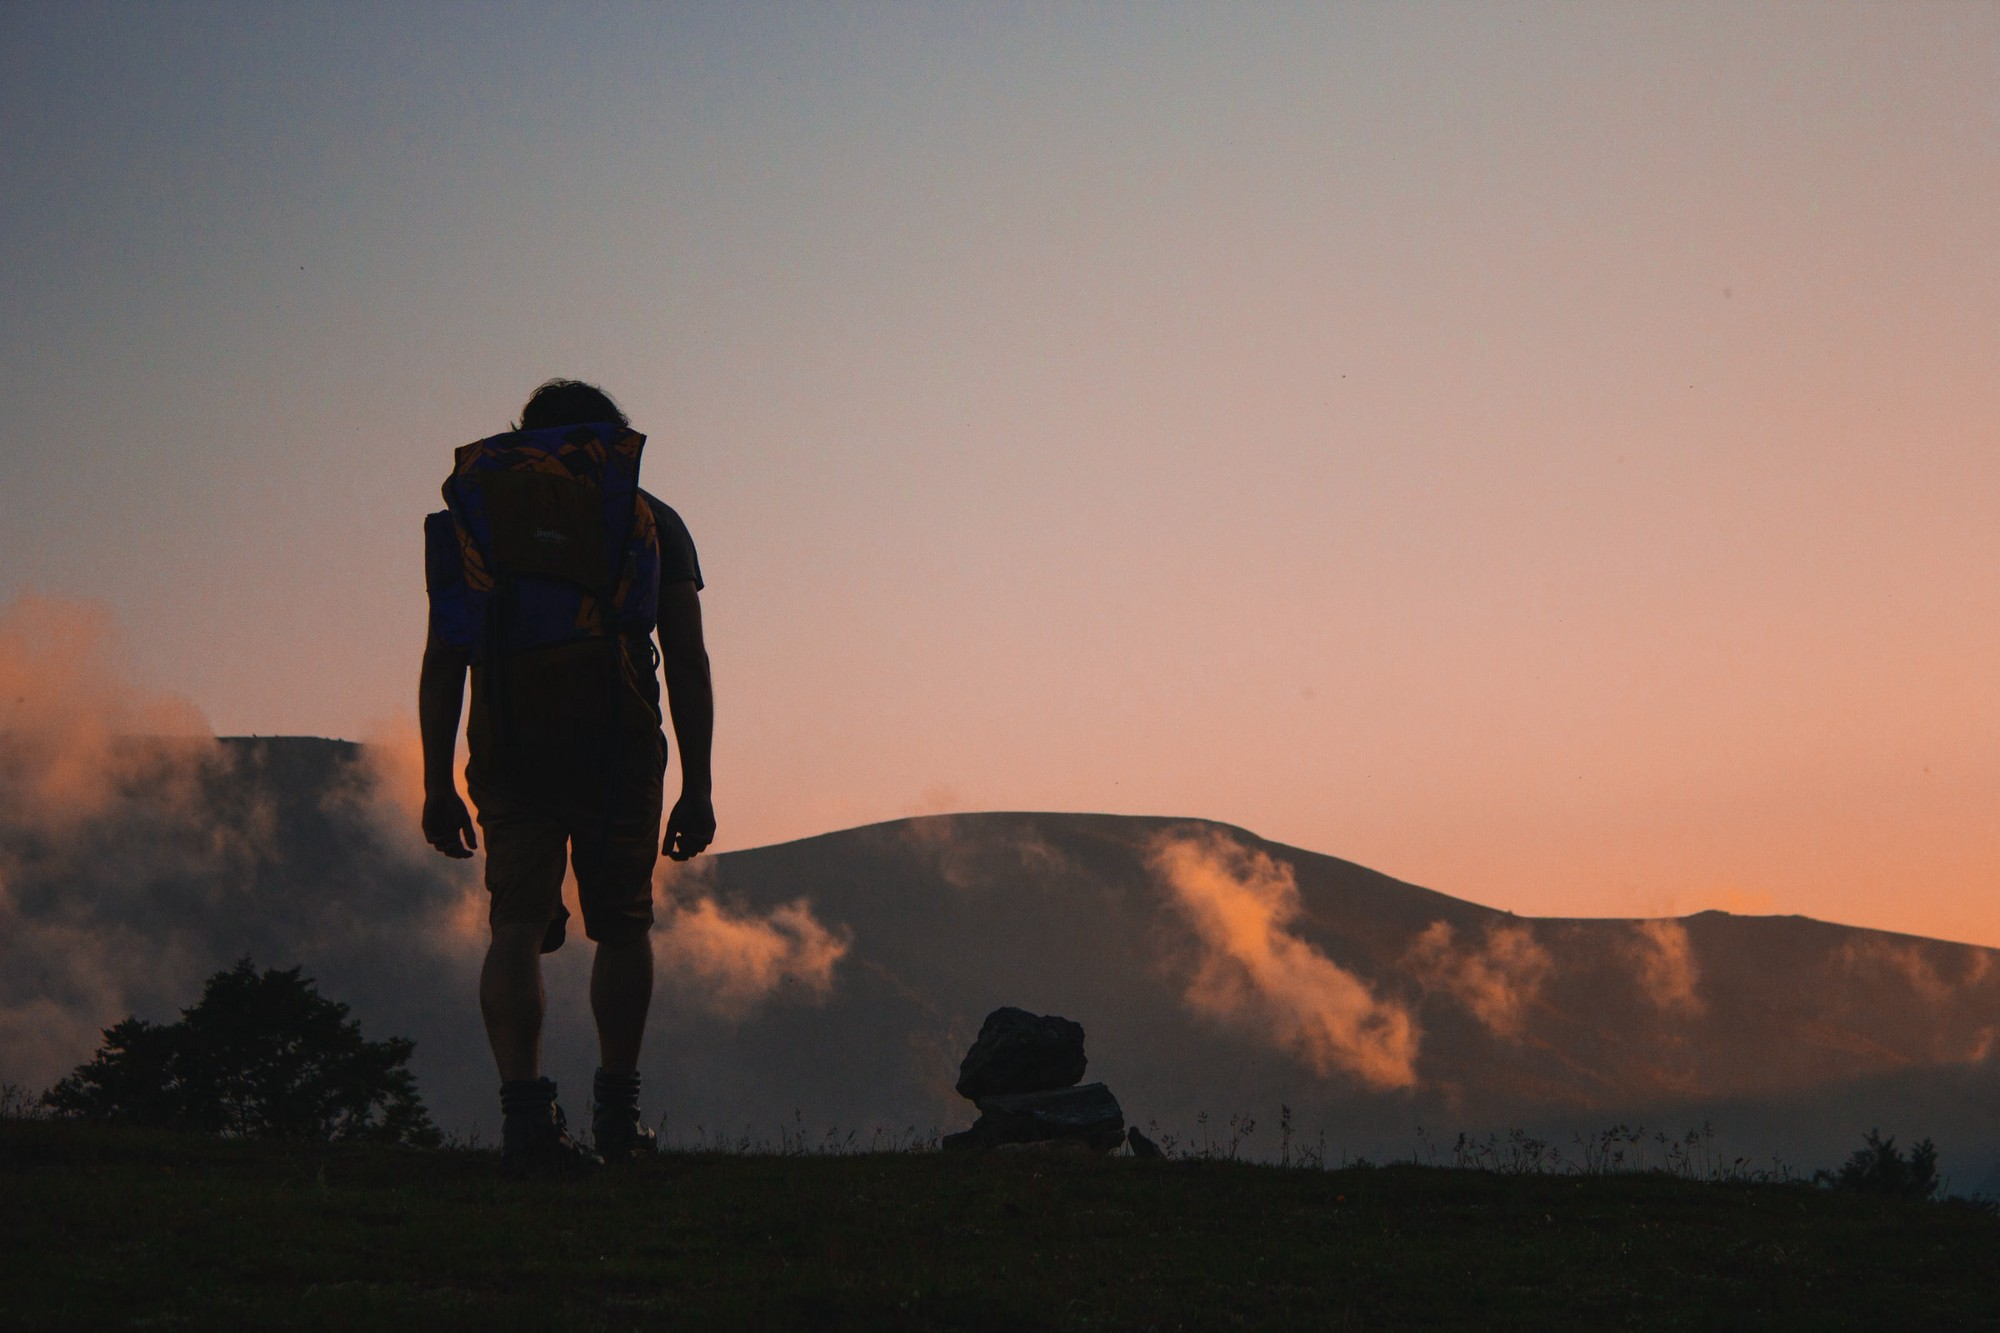 A silhouette of a person trekking towards an orange sky and large mountains.